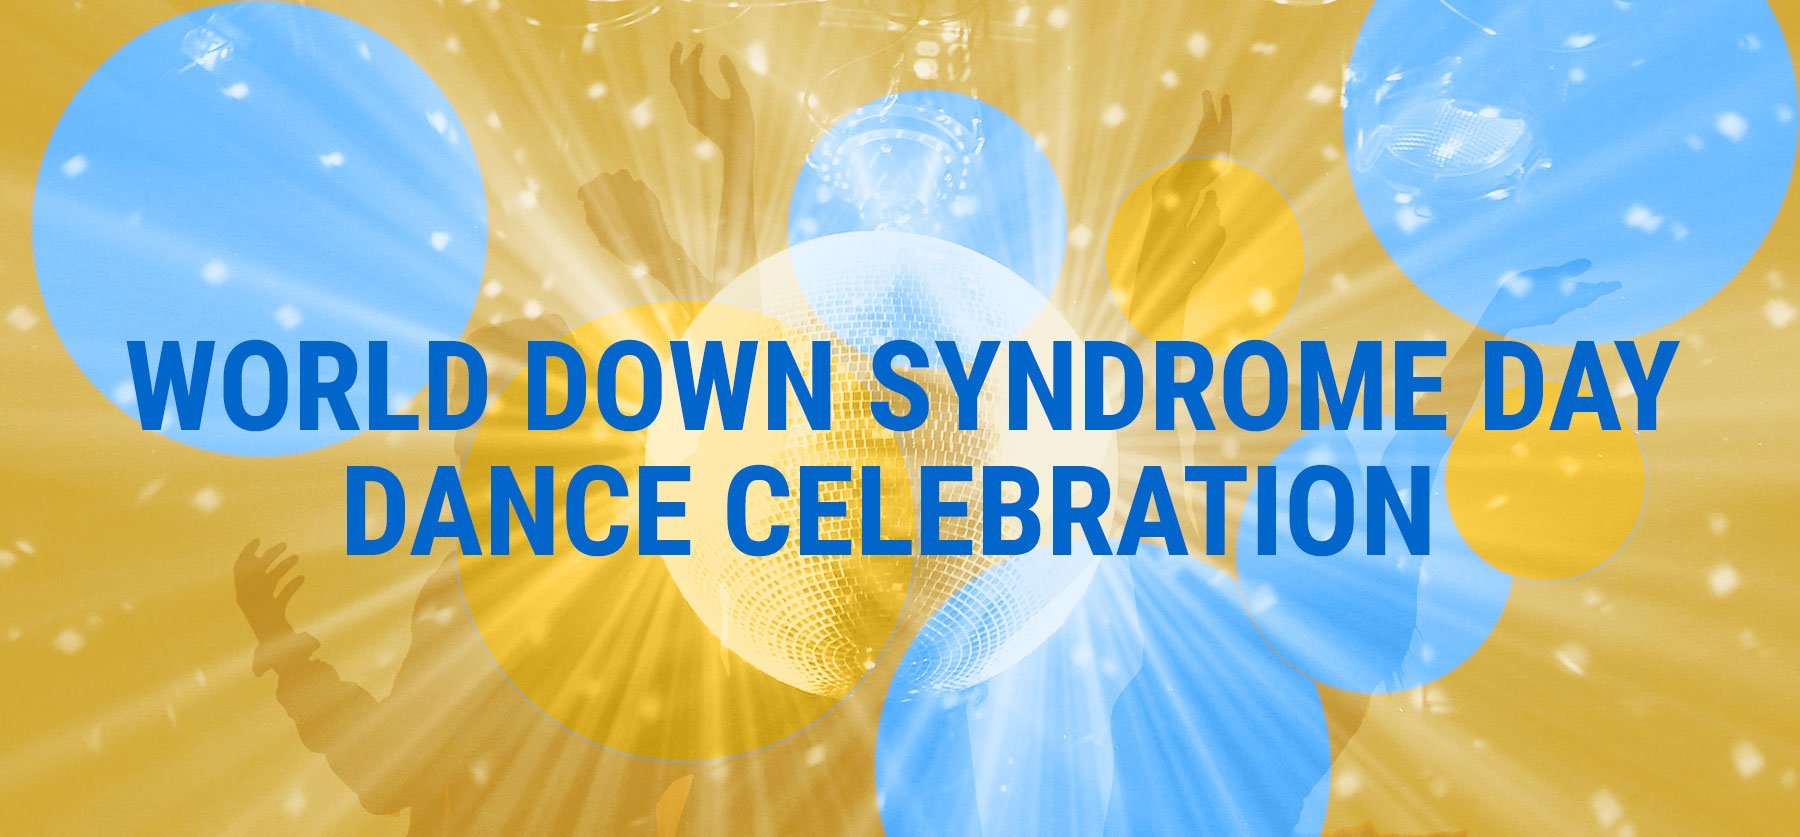 World Down Syndrome Day Dance Celebration